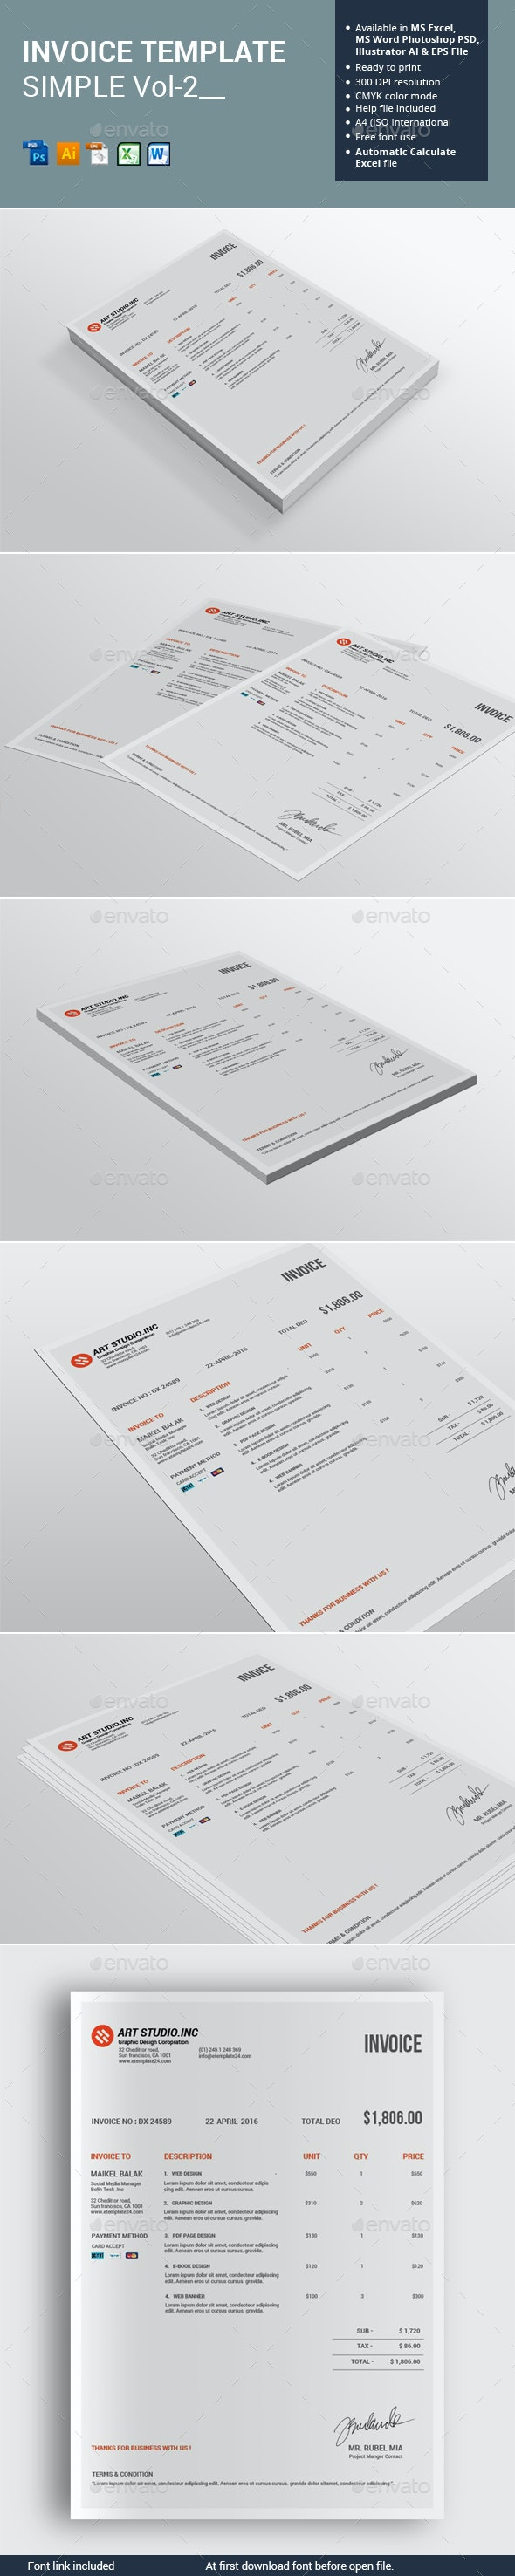 Invoice Template Simple - Proposals & Invoices Stationery